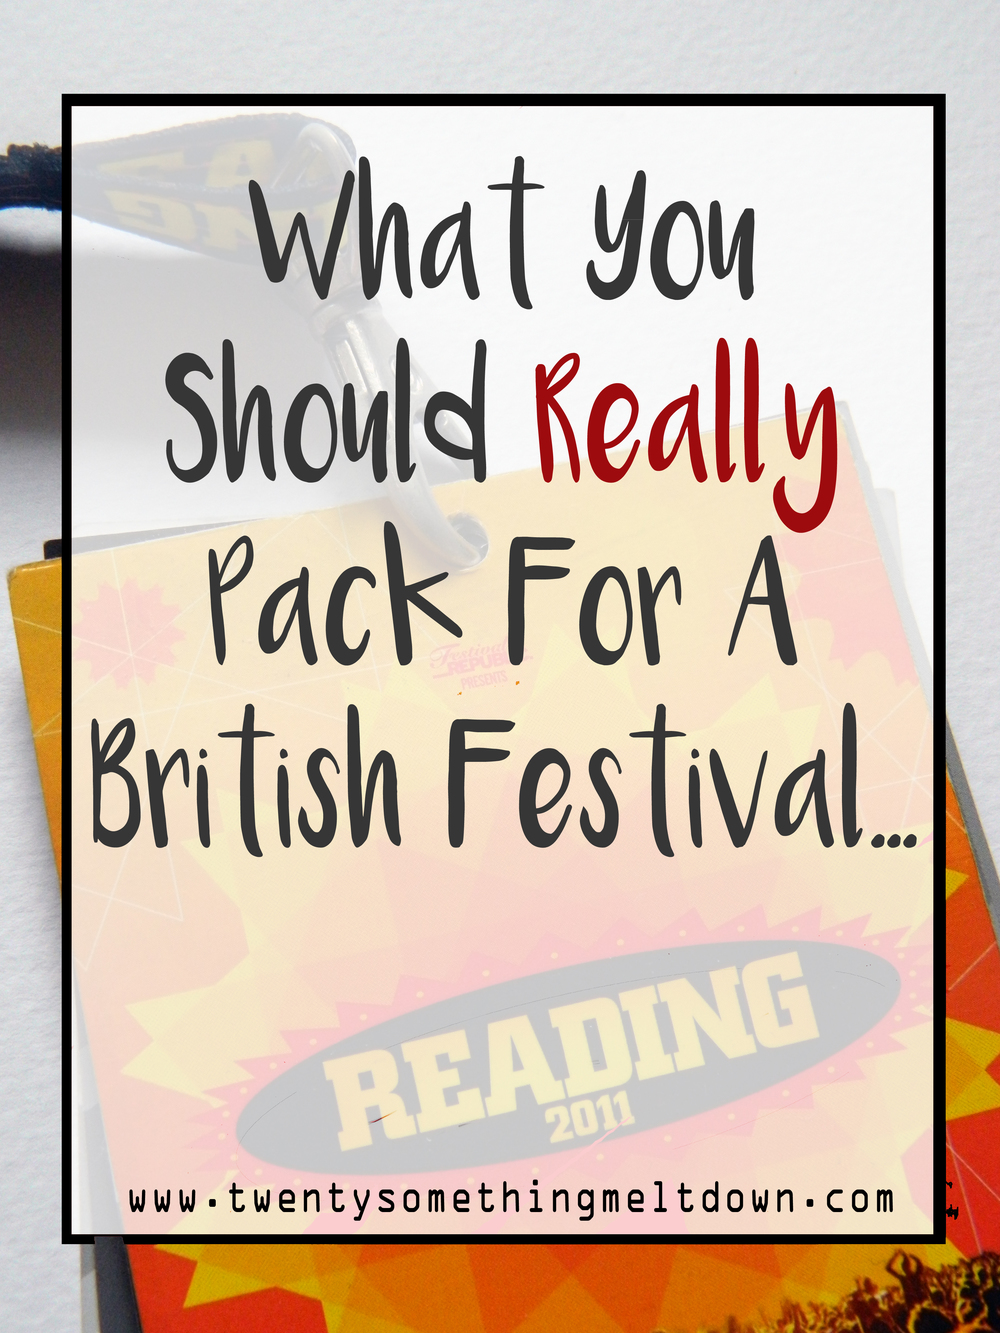 What You Should Really Pack For A British Festival.